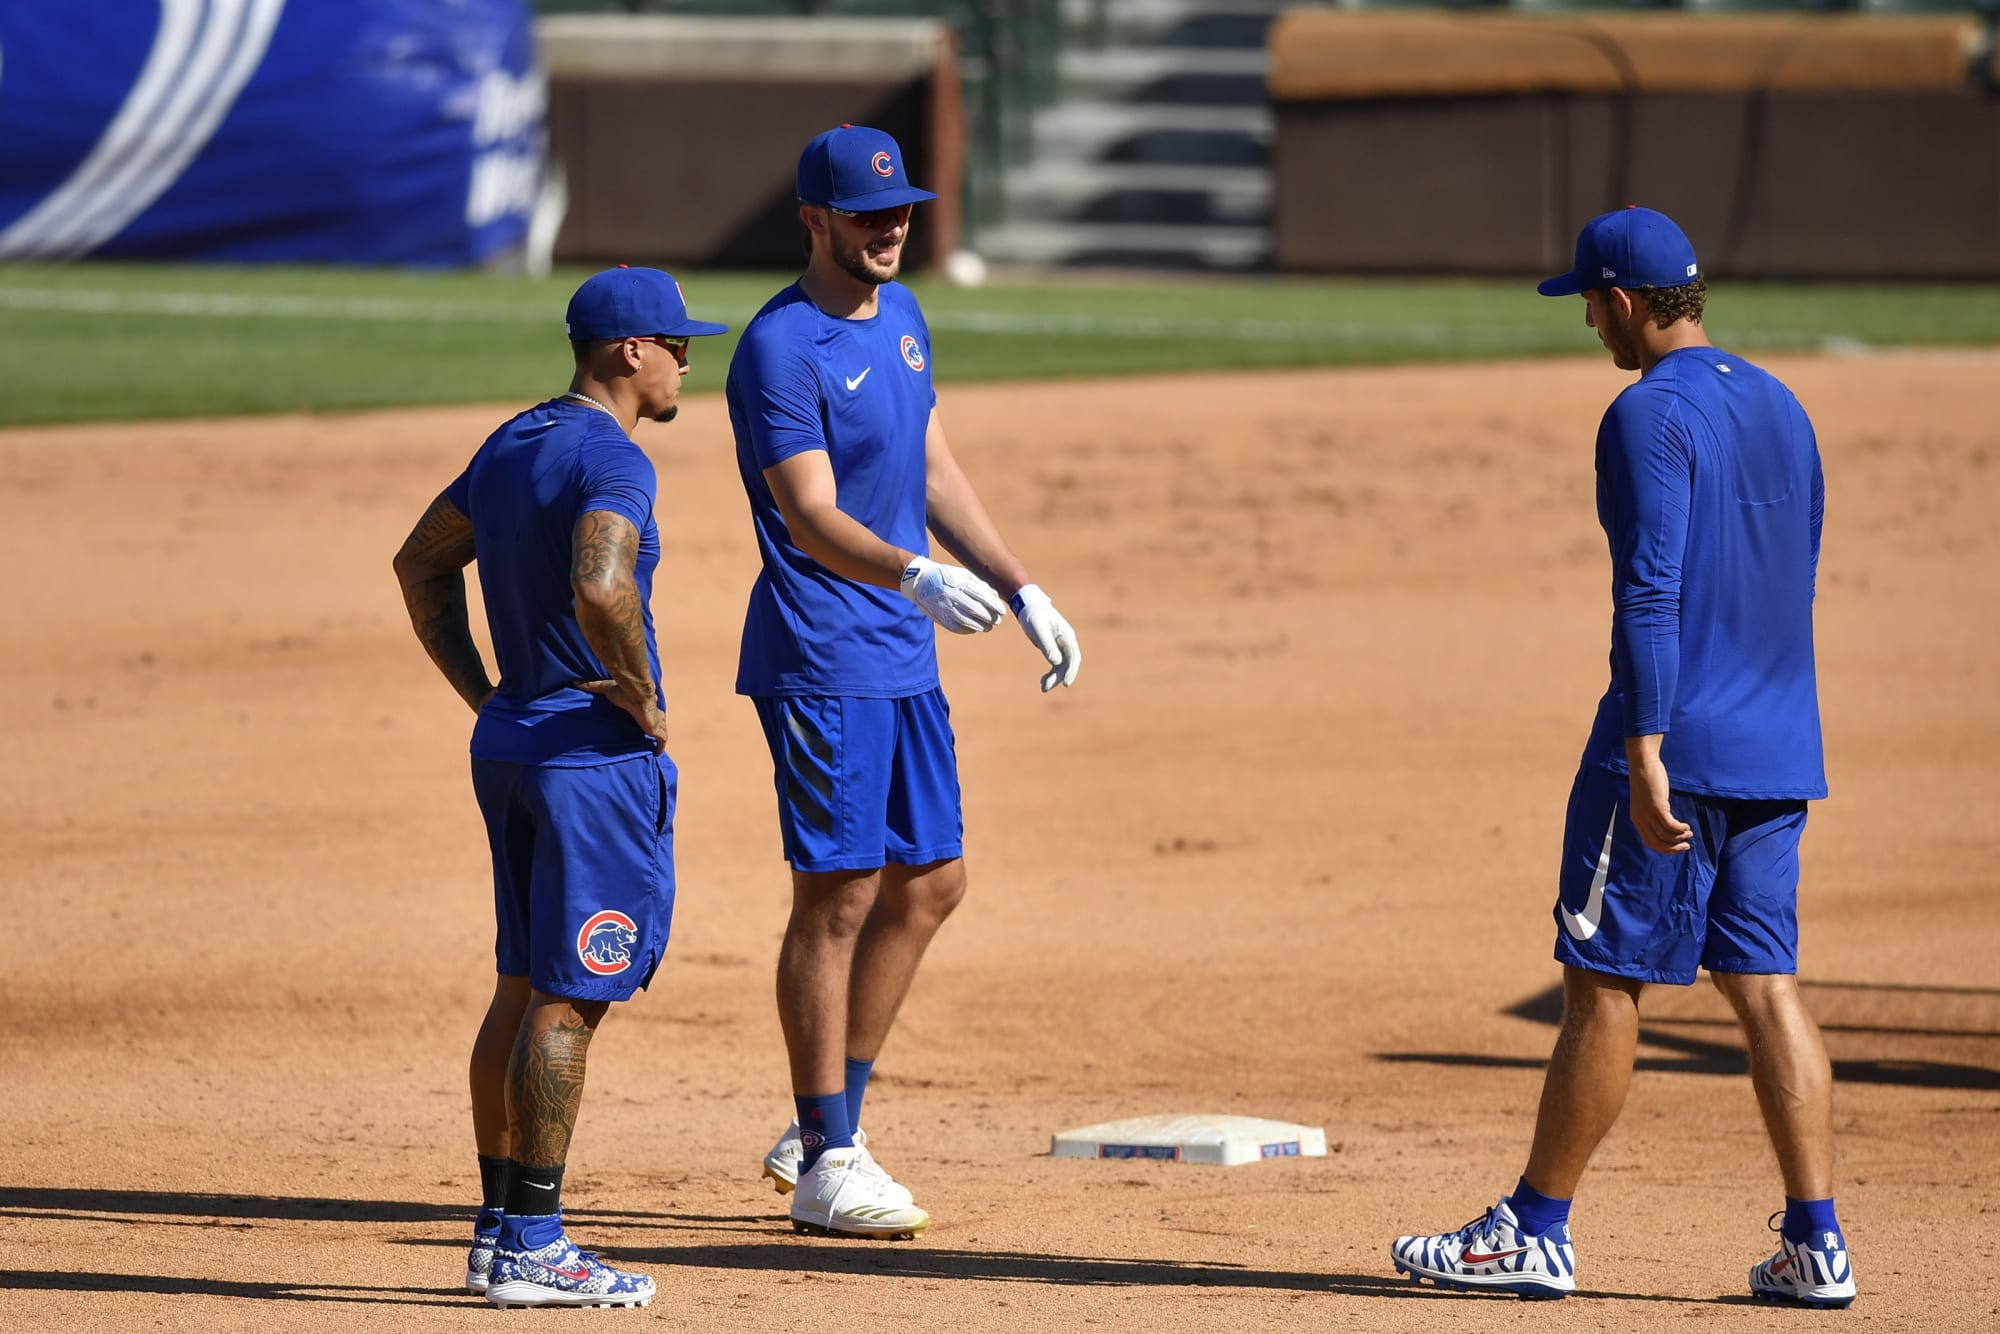 Cubs: The pressure, real or imagined, is on these key players